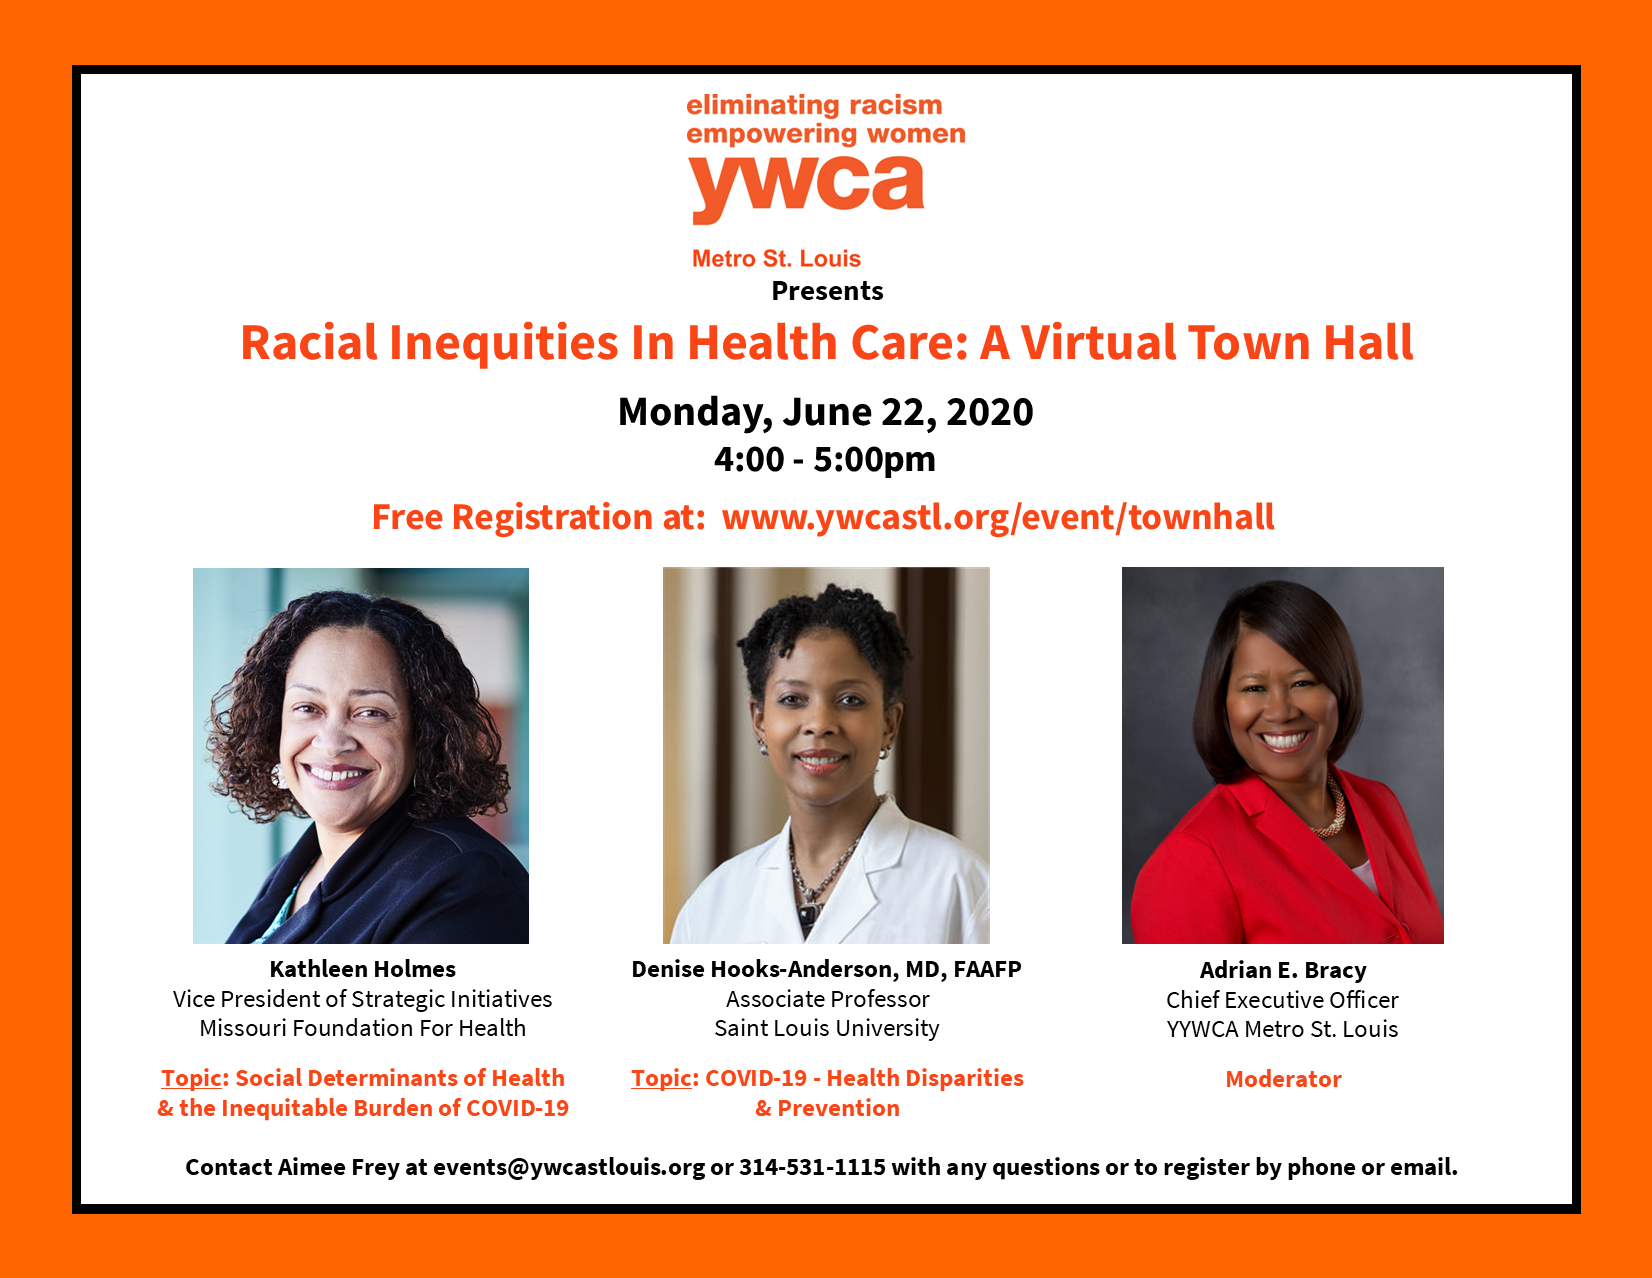 Racial Inequities In Health Care: A Virtual Town Hall